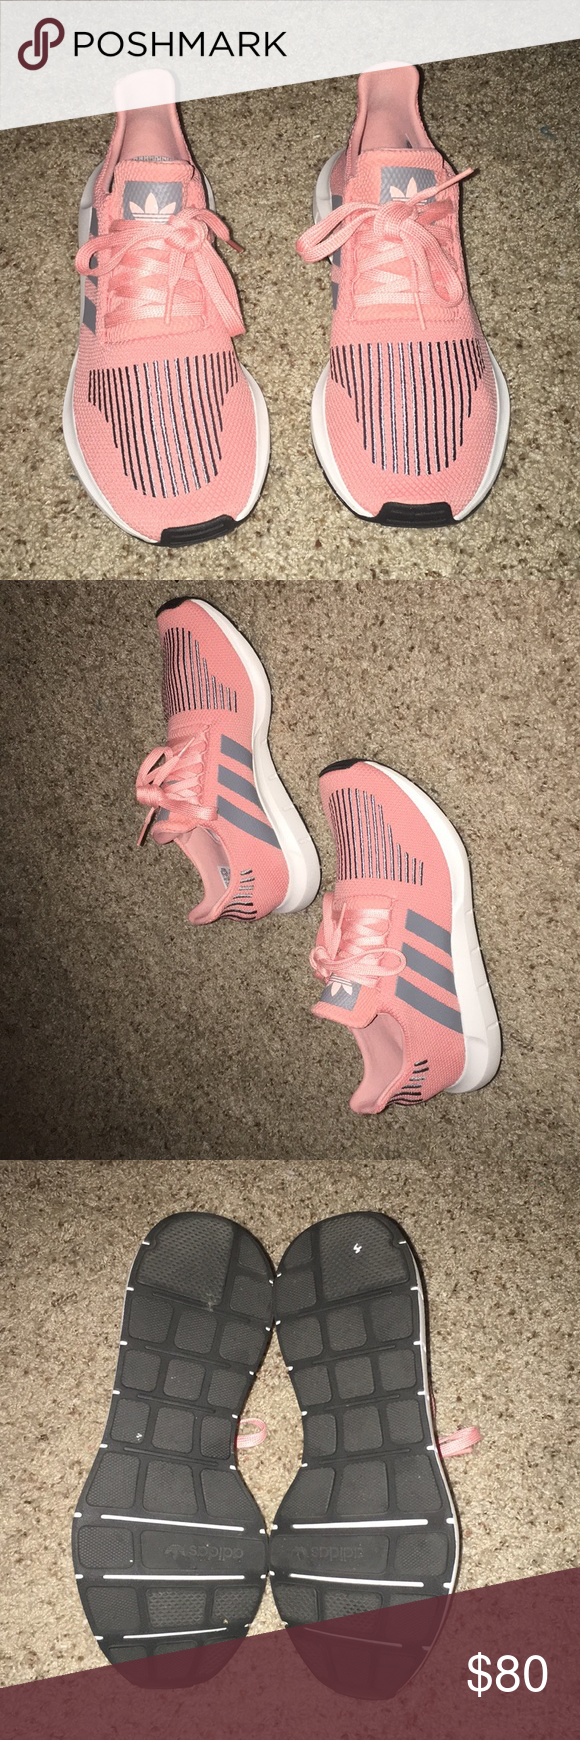 d2a4ee833e6 Adidas Swift Run shoes • women s • size 8 1 2 Adidas Swift Run shoes •  women s • size 8 1 2 • worn once • trace pink and cargo gray adidas Shoes  Athletic ...